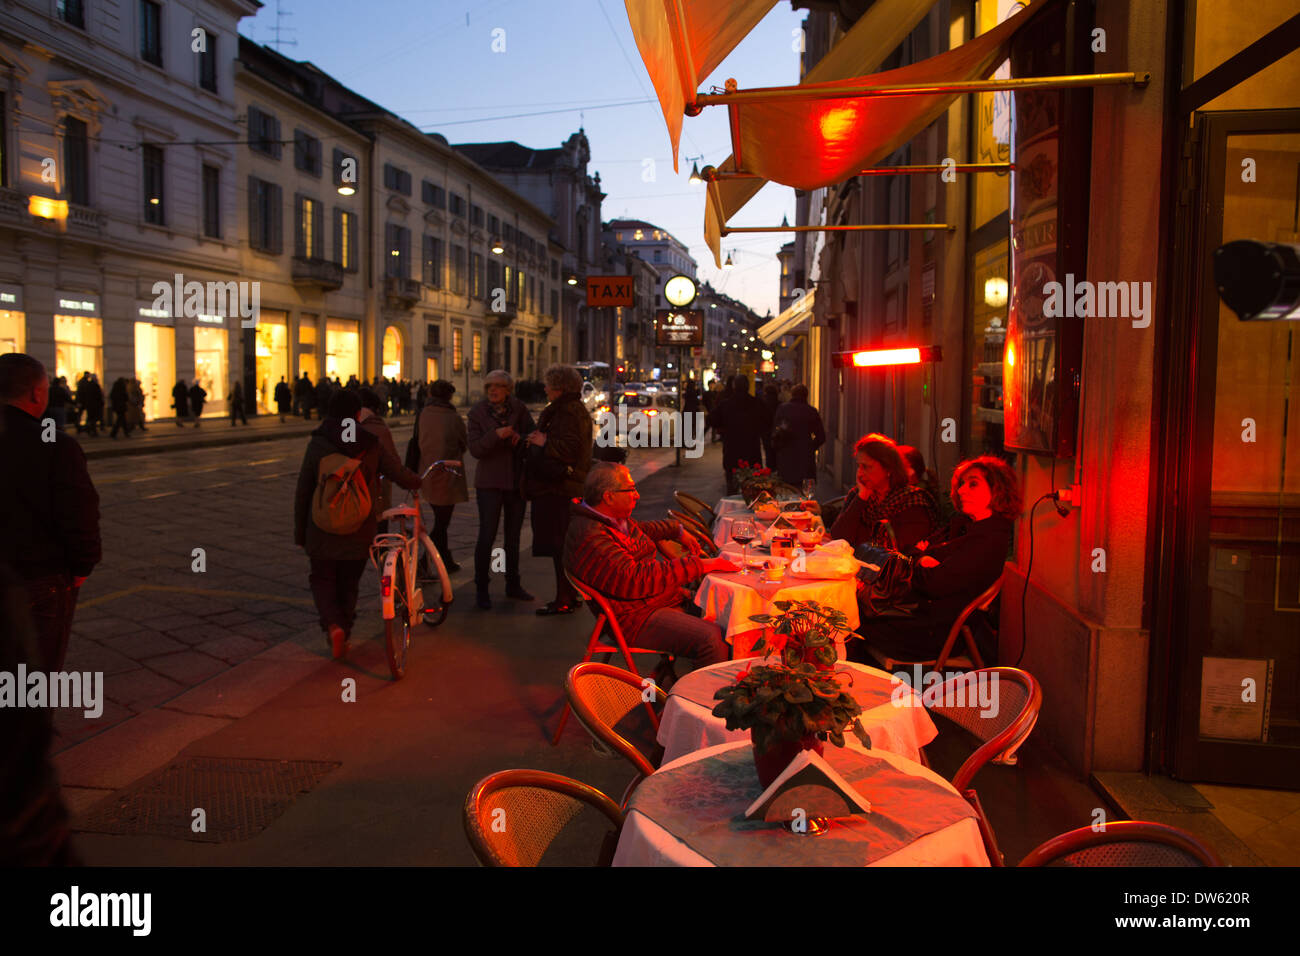 People sitting outside at a restaurant on Via Manzoni, Milan, Italy - Stock Image